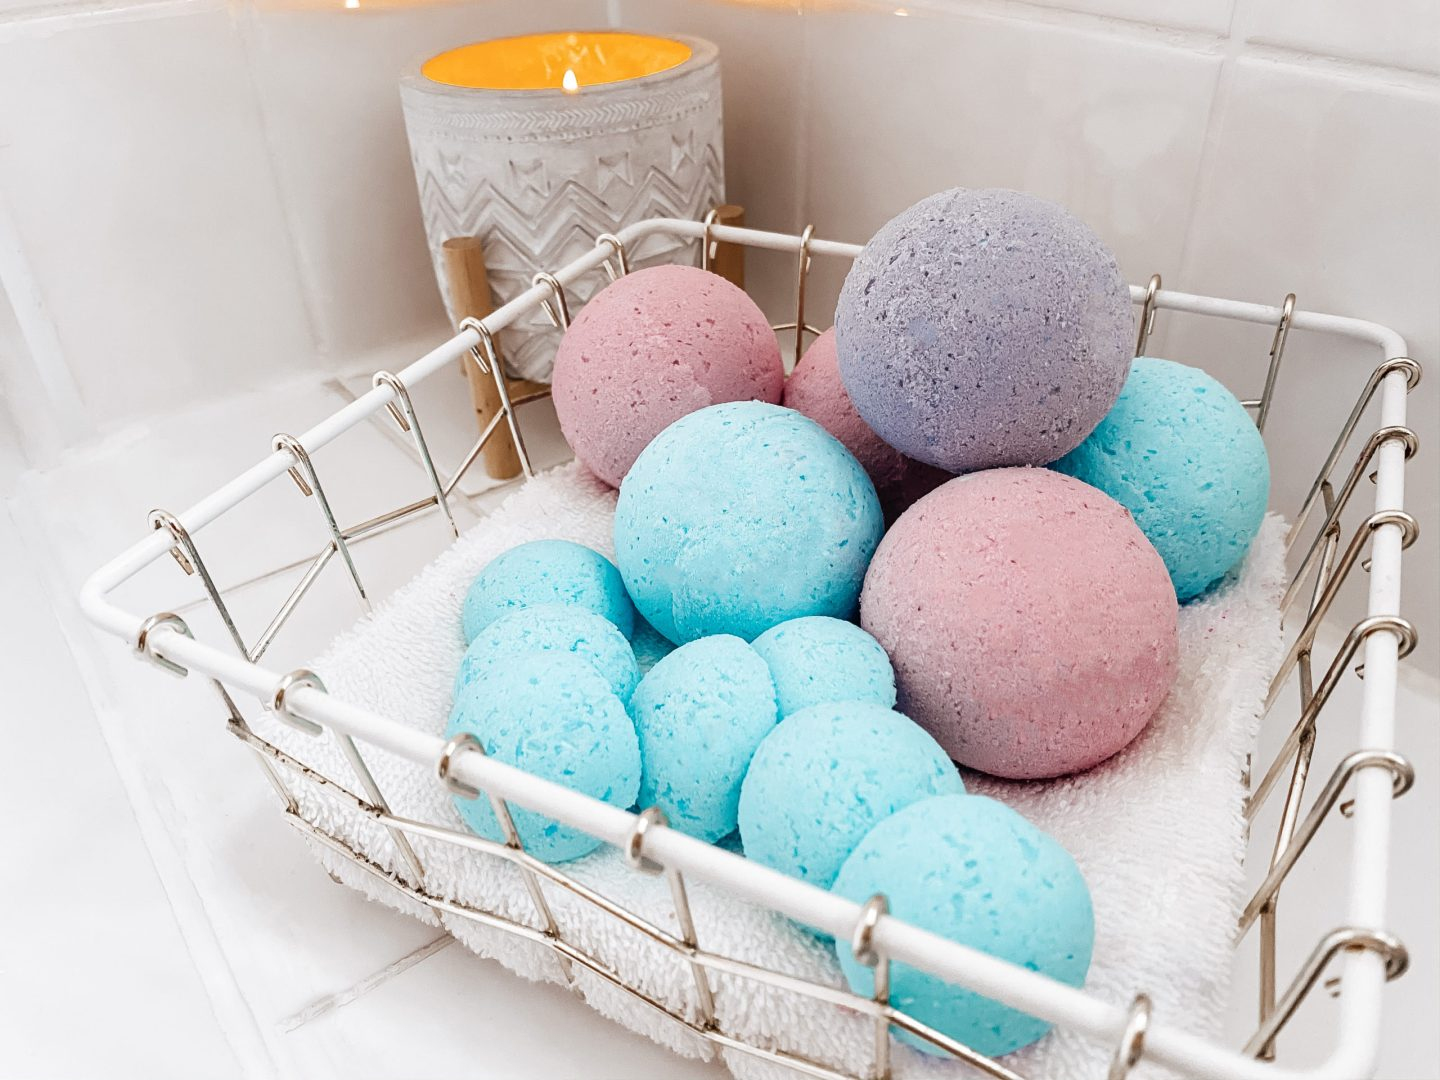 DIY CHILD SAFE BATH BOMBS